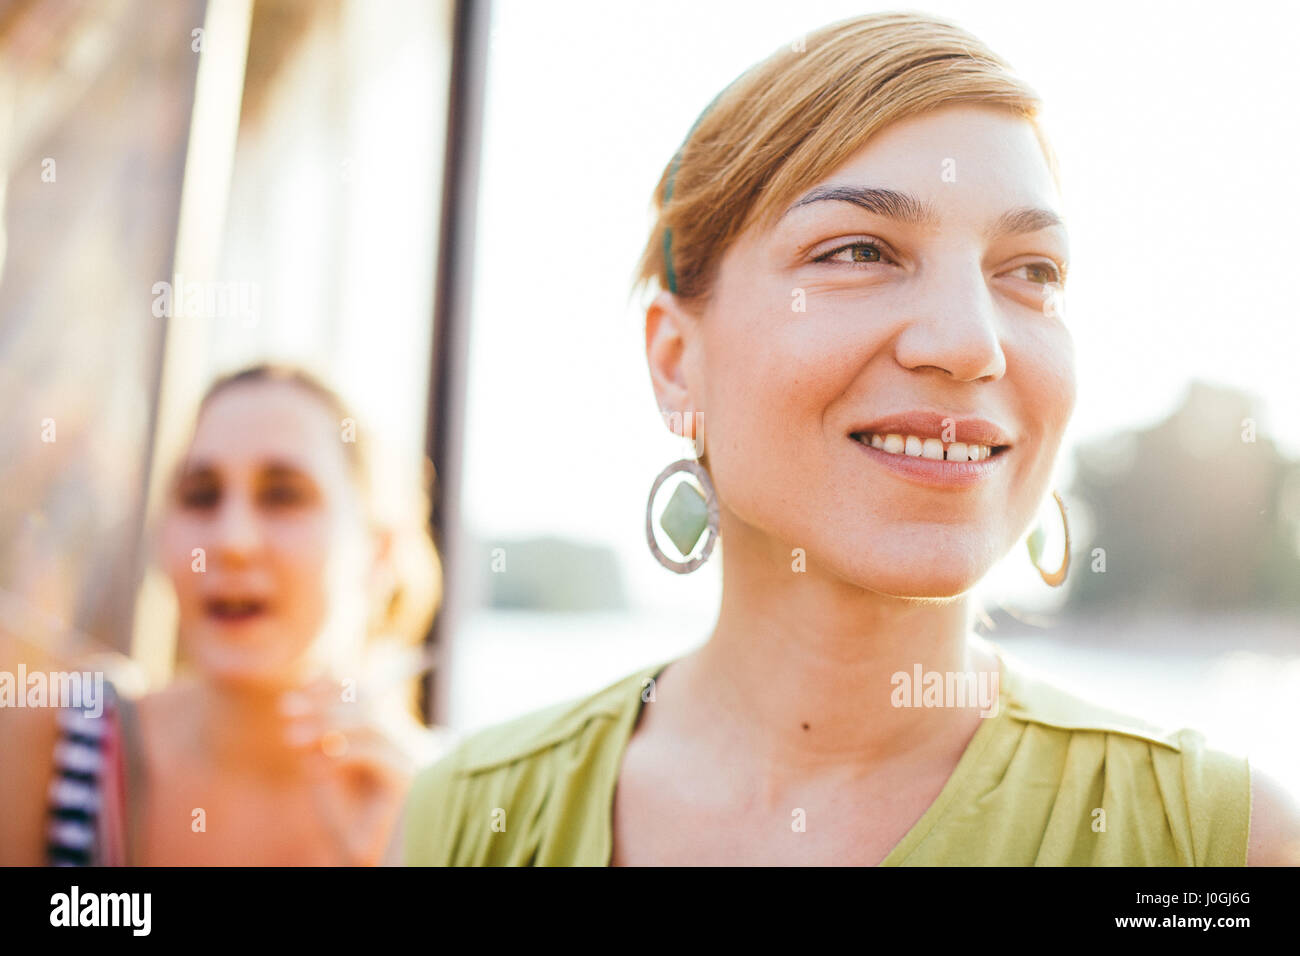 portrait of a young woman smiling in Novi Sad, Serbia - Stock Image